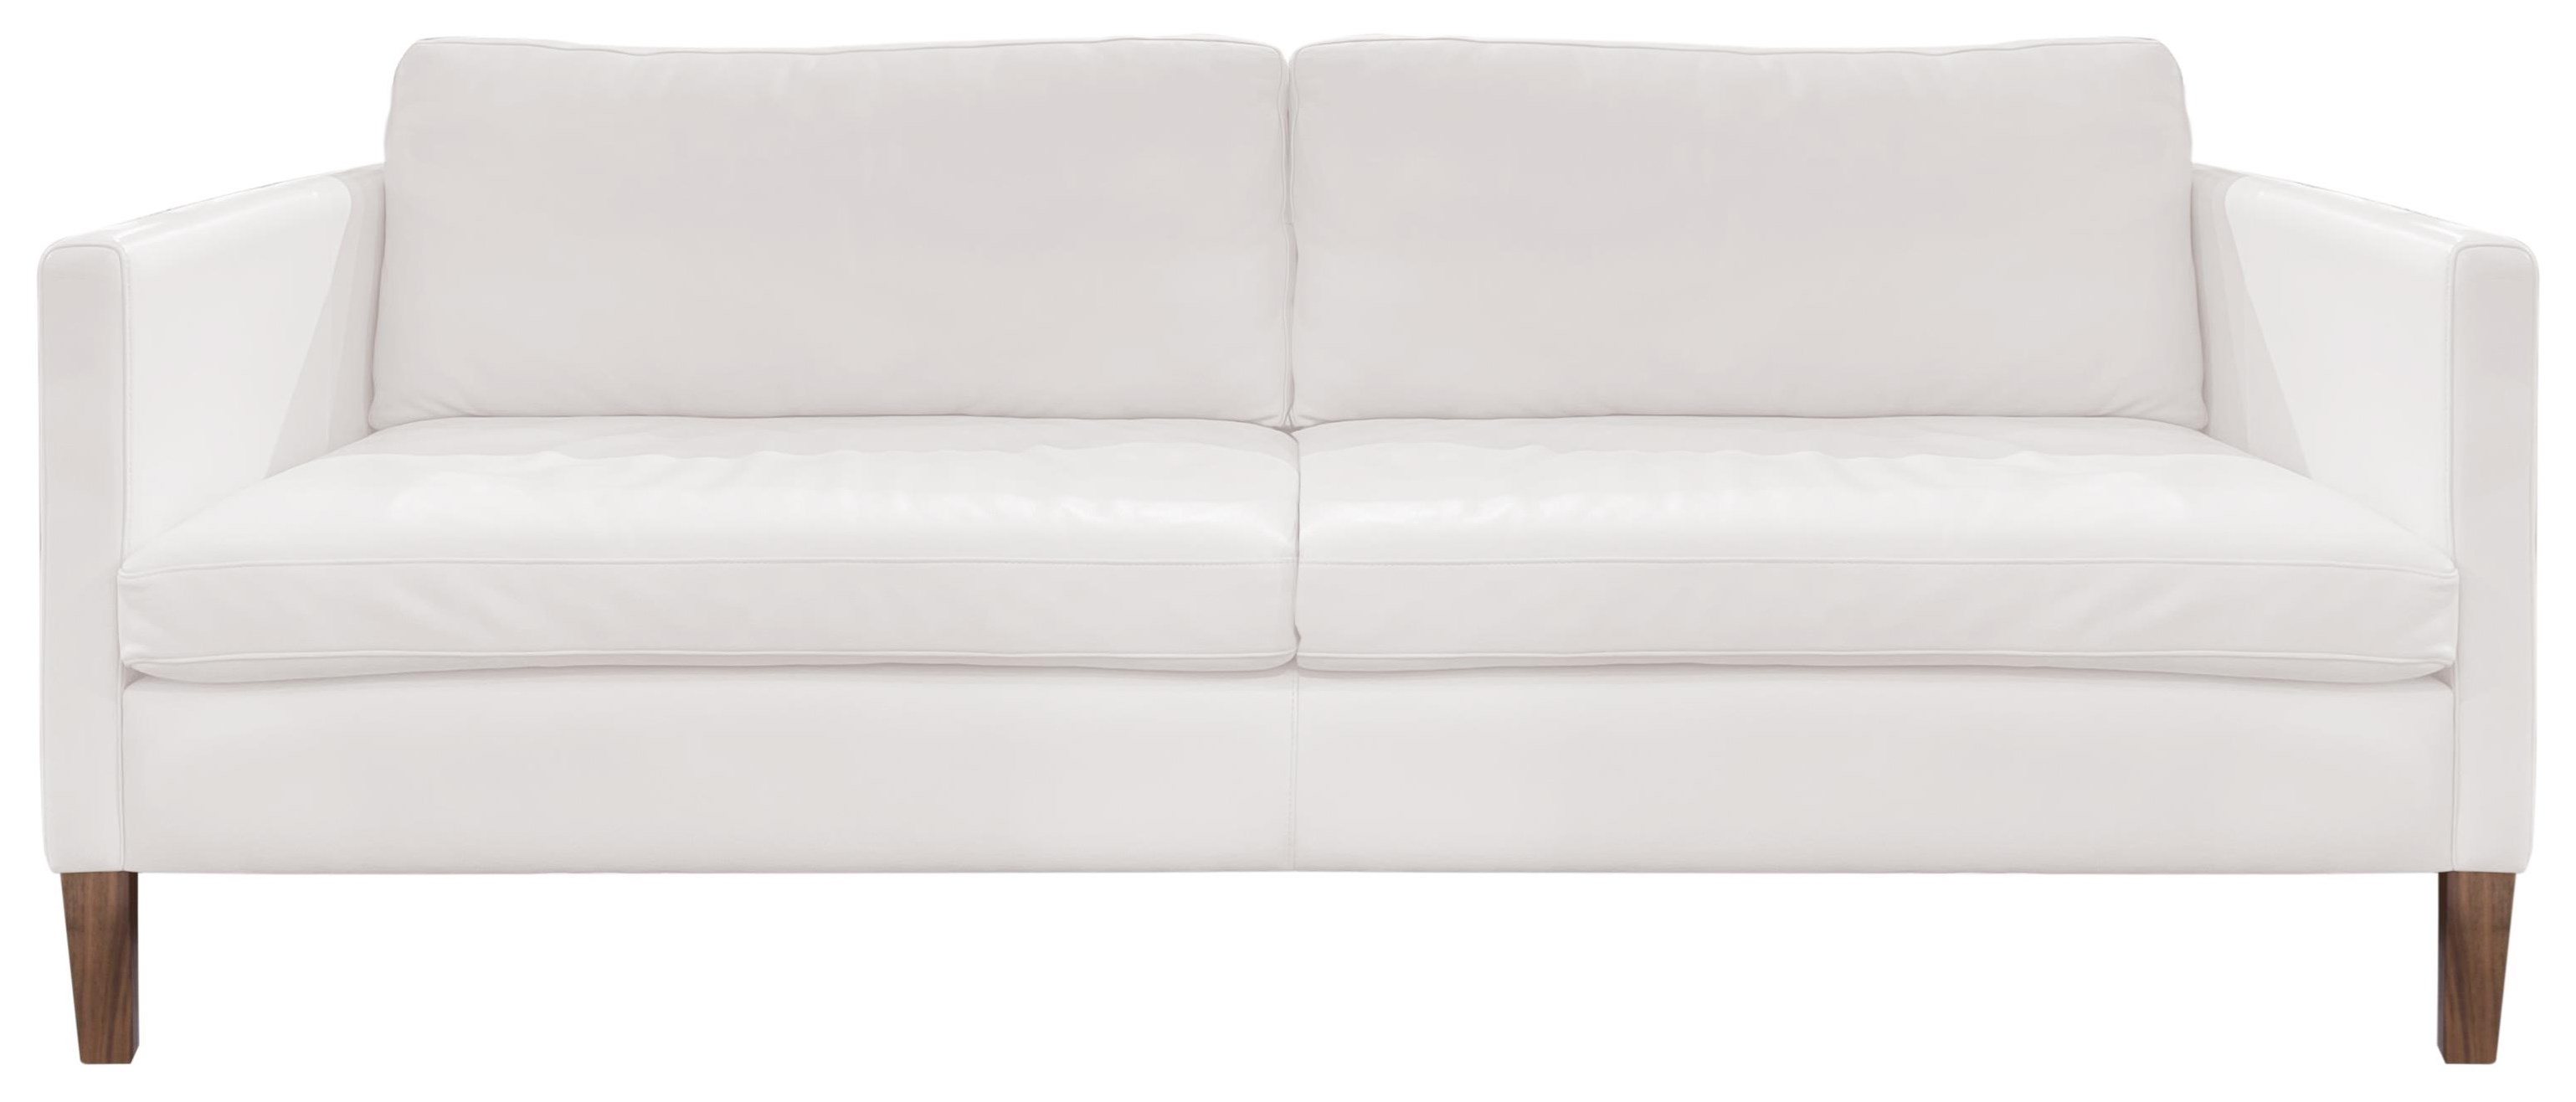 Milo Small Scale Sofa by American Leather at C. S. Wo & Sons Hawaii